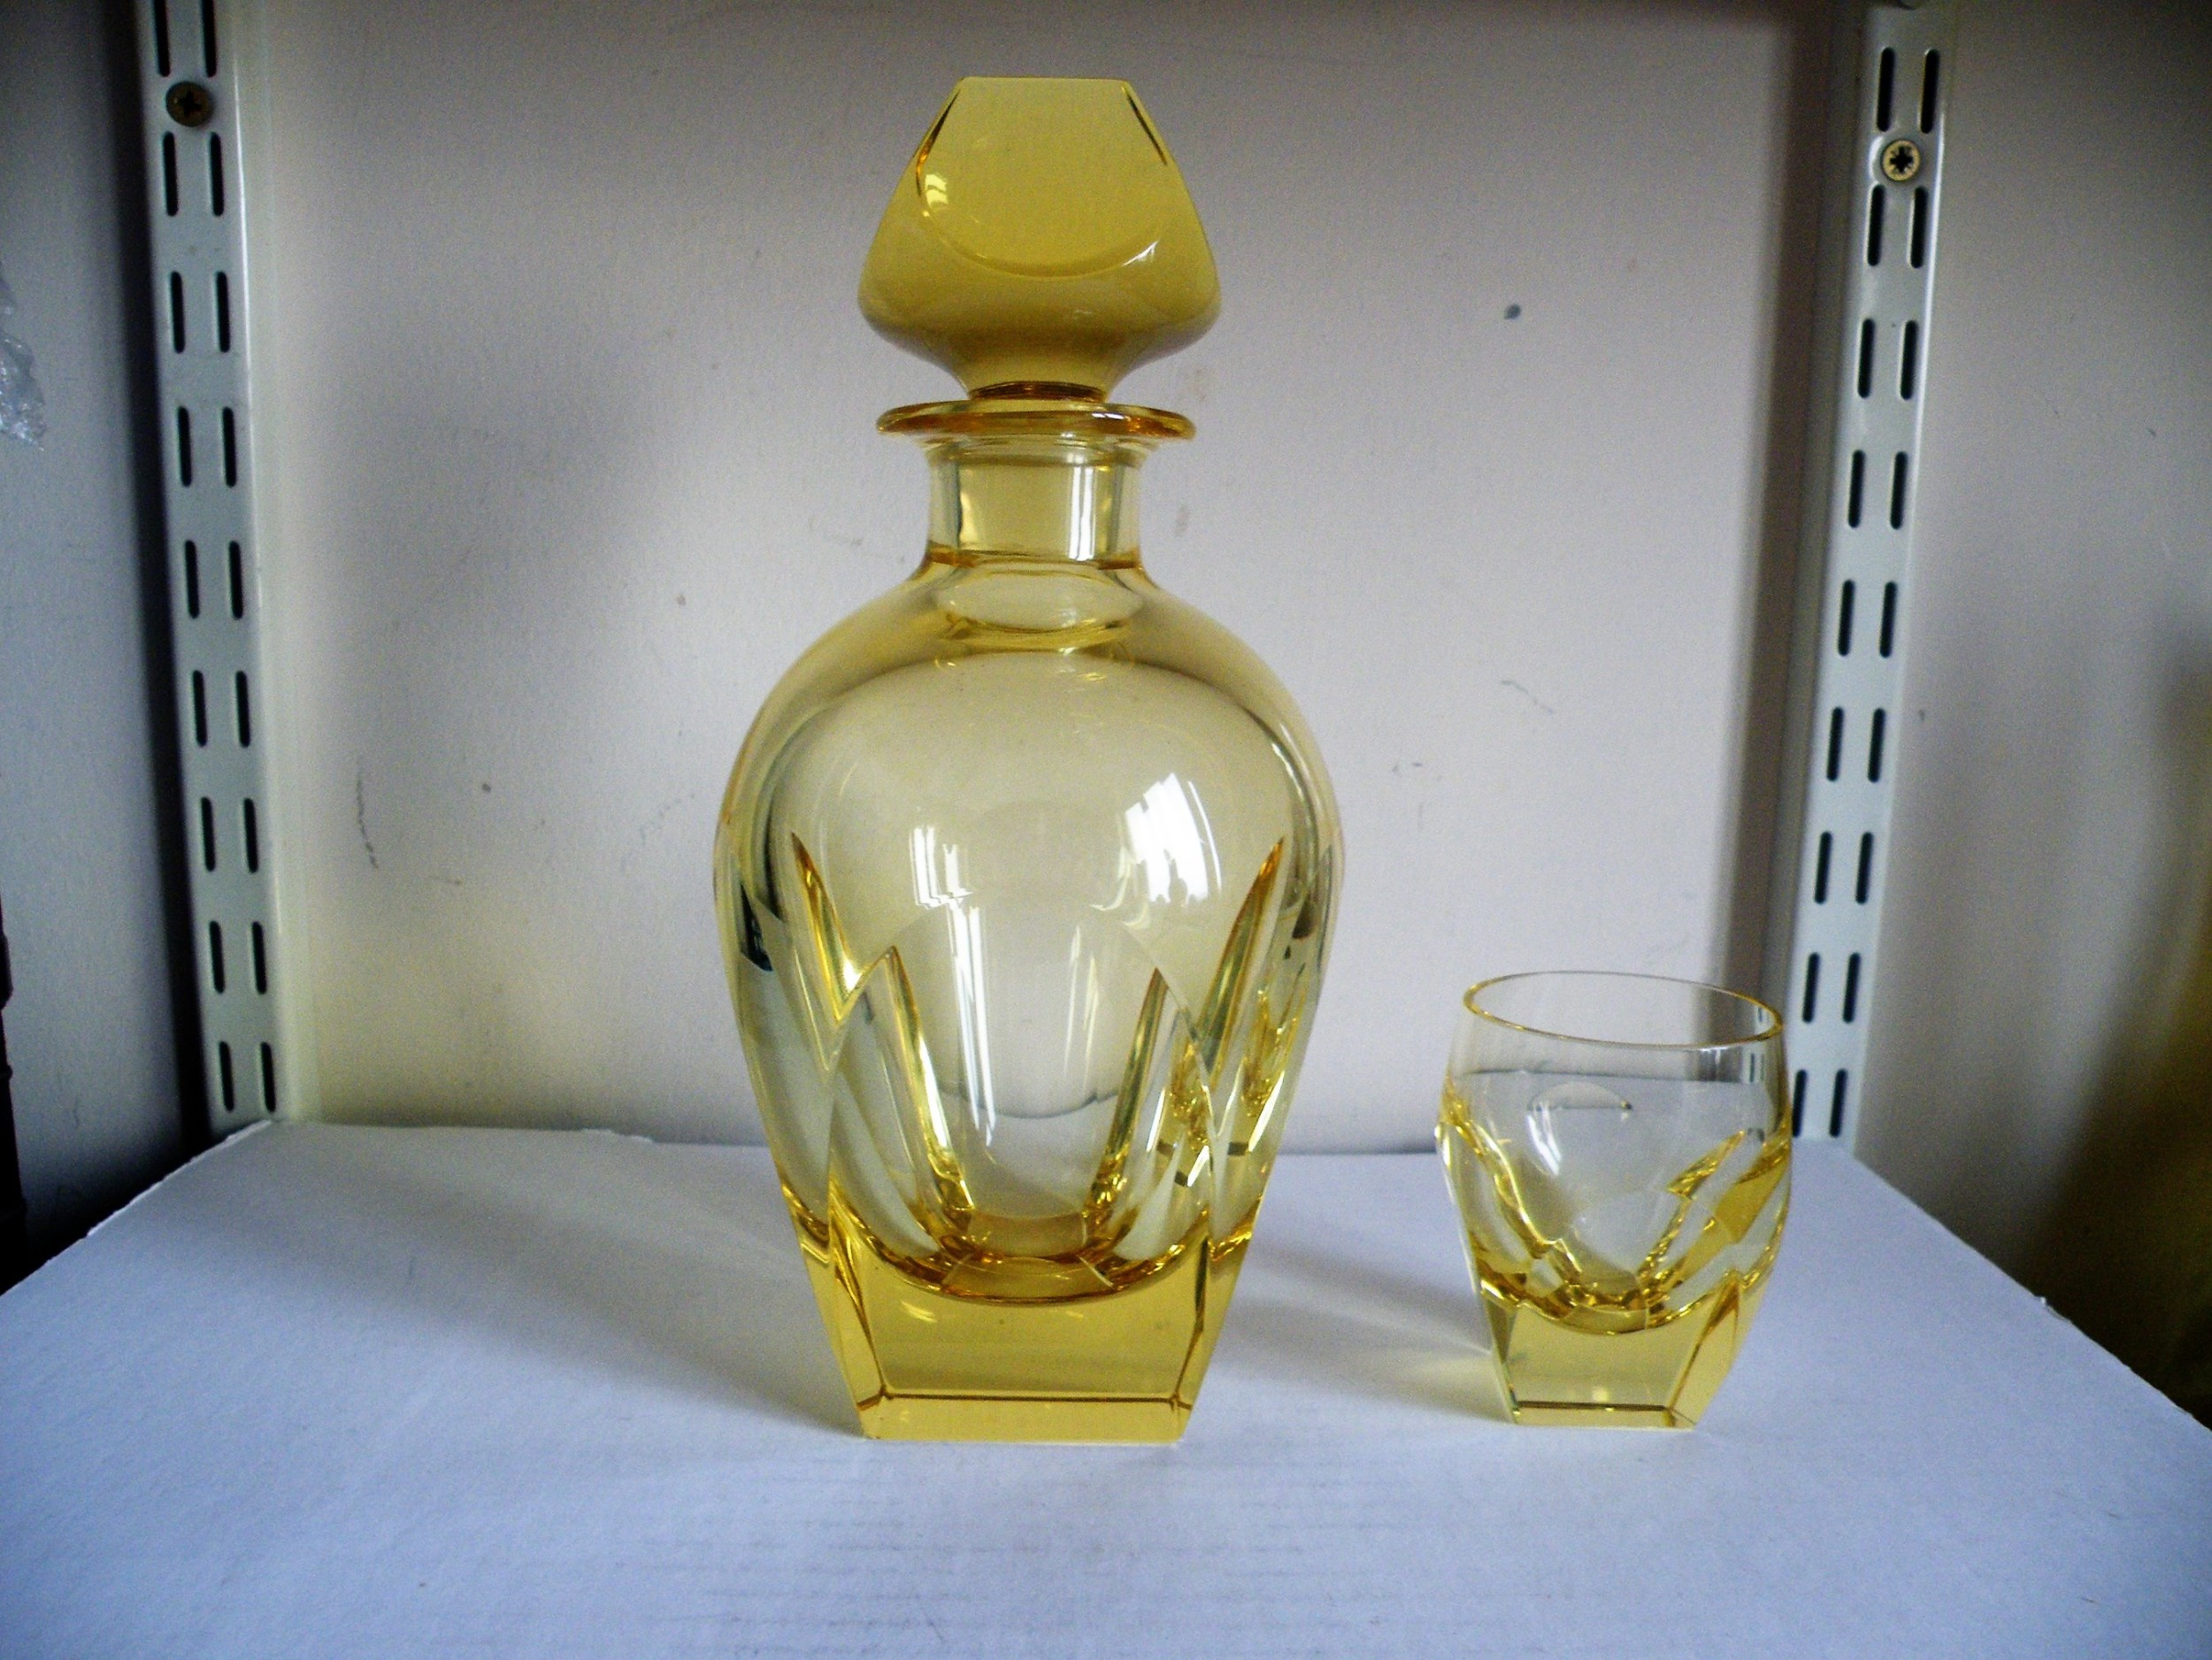 a citron colour art deco decanter and glass by moser of karlsbad